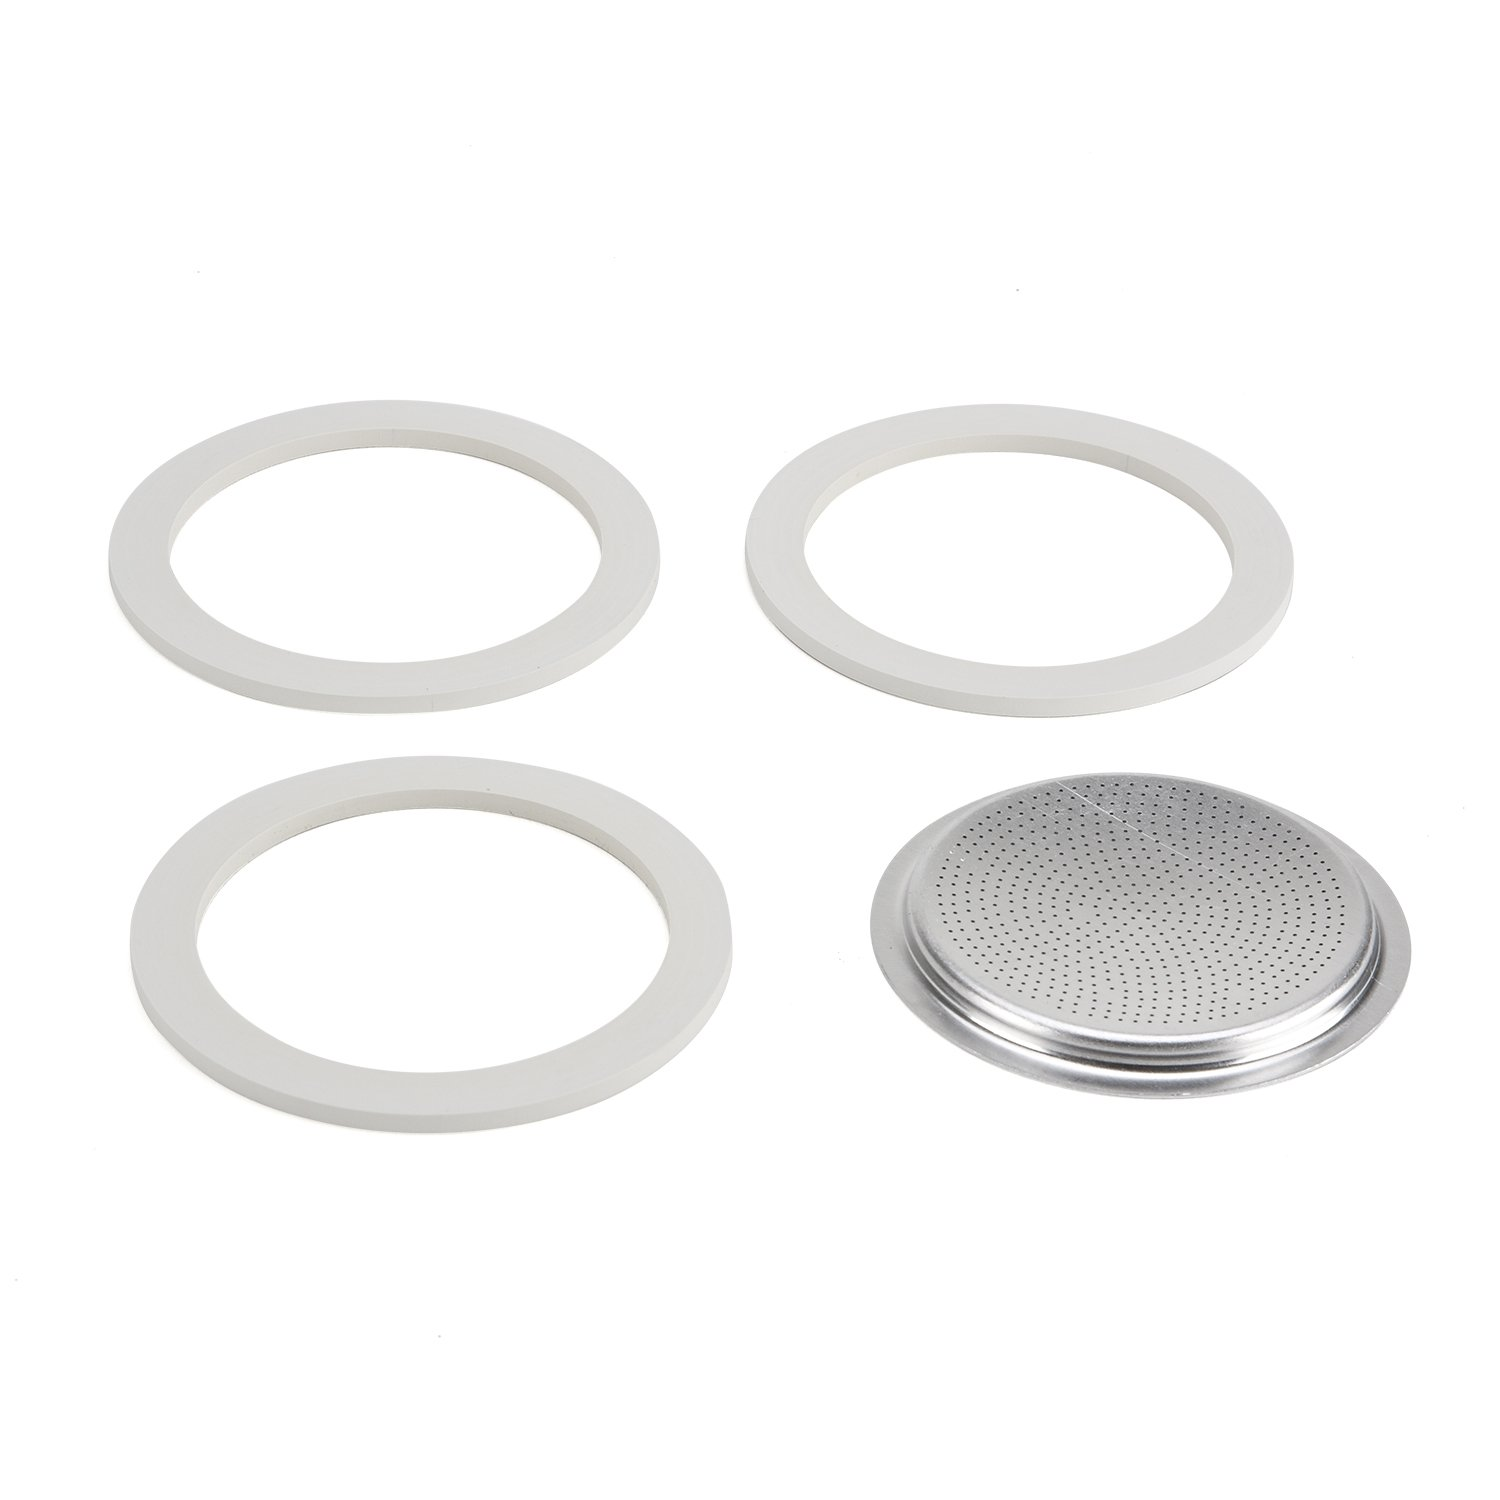 Bialetti 06602 Moka 9-Cup Gasket/Filter Replacement Parts